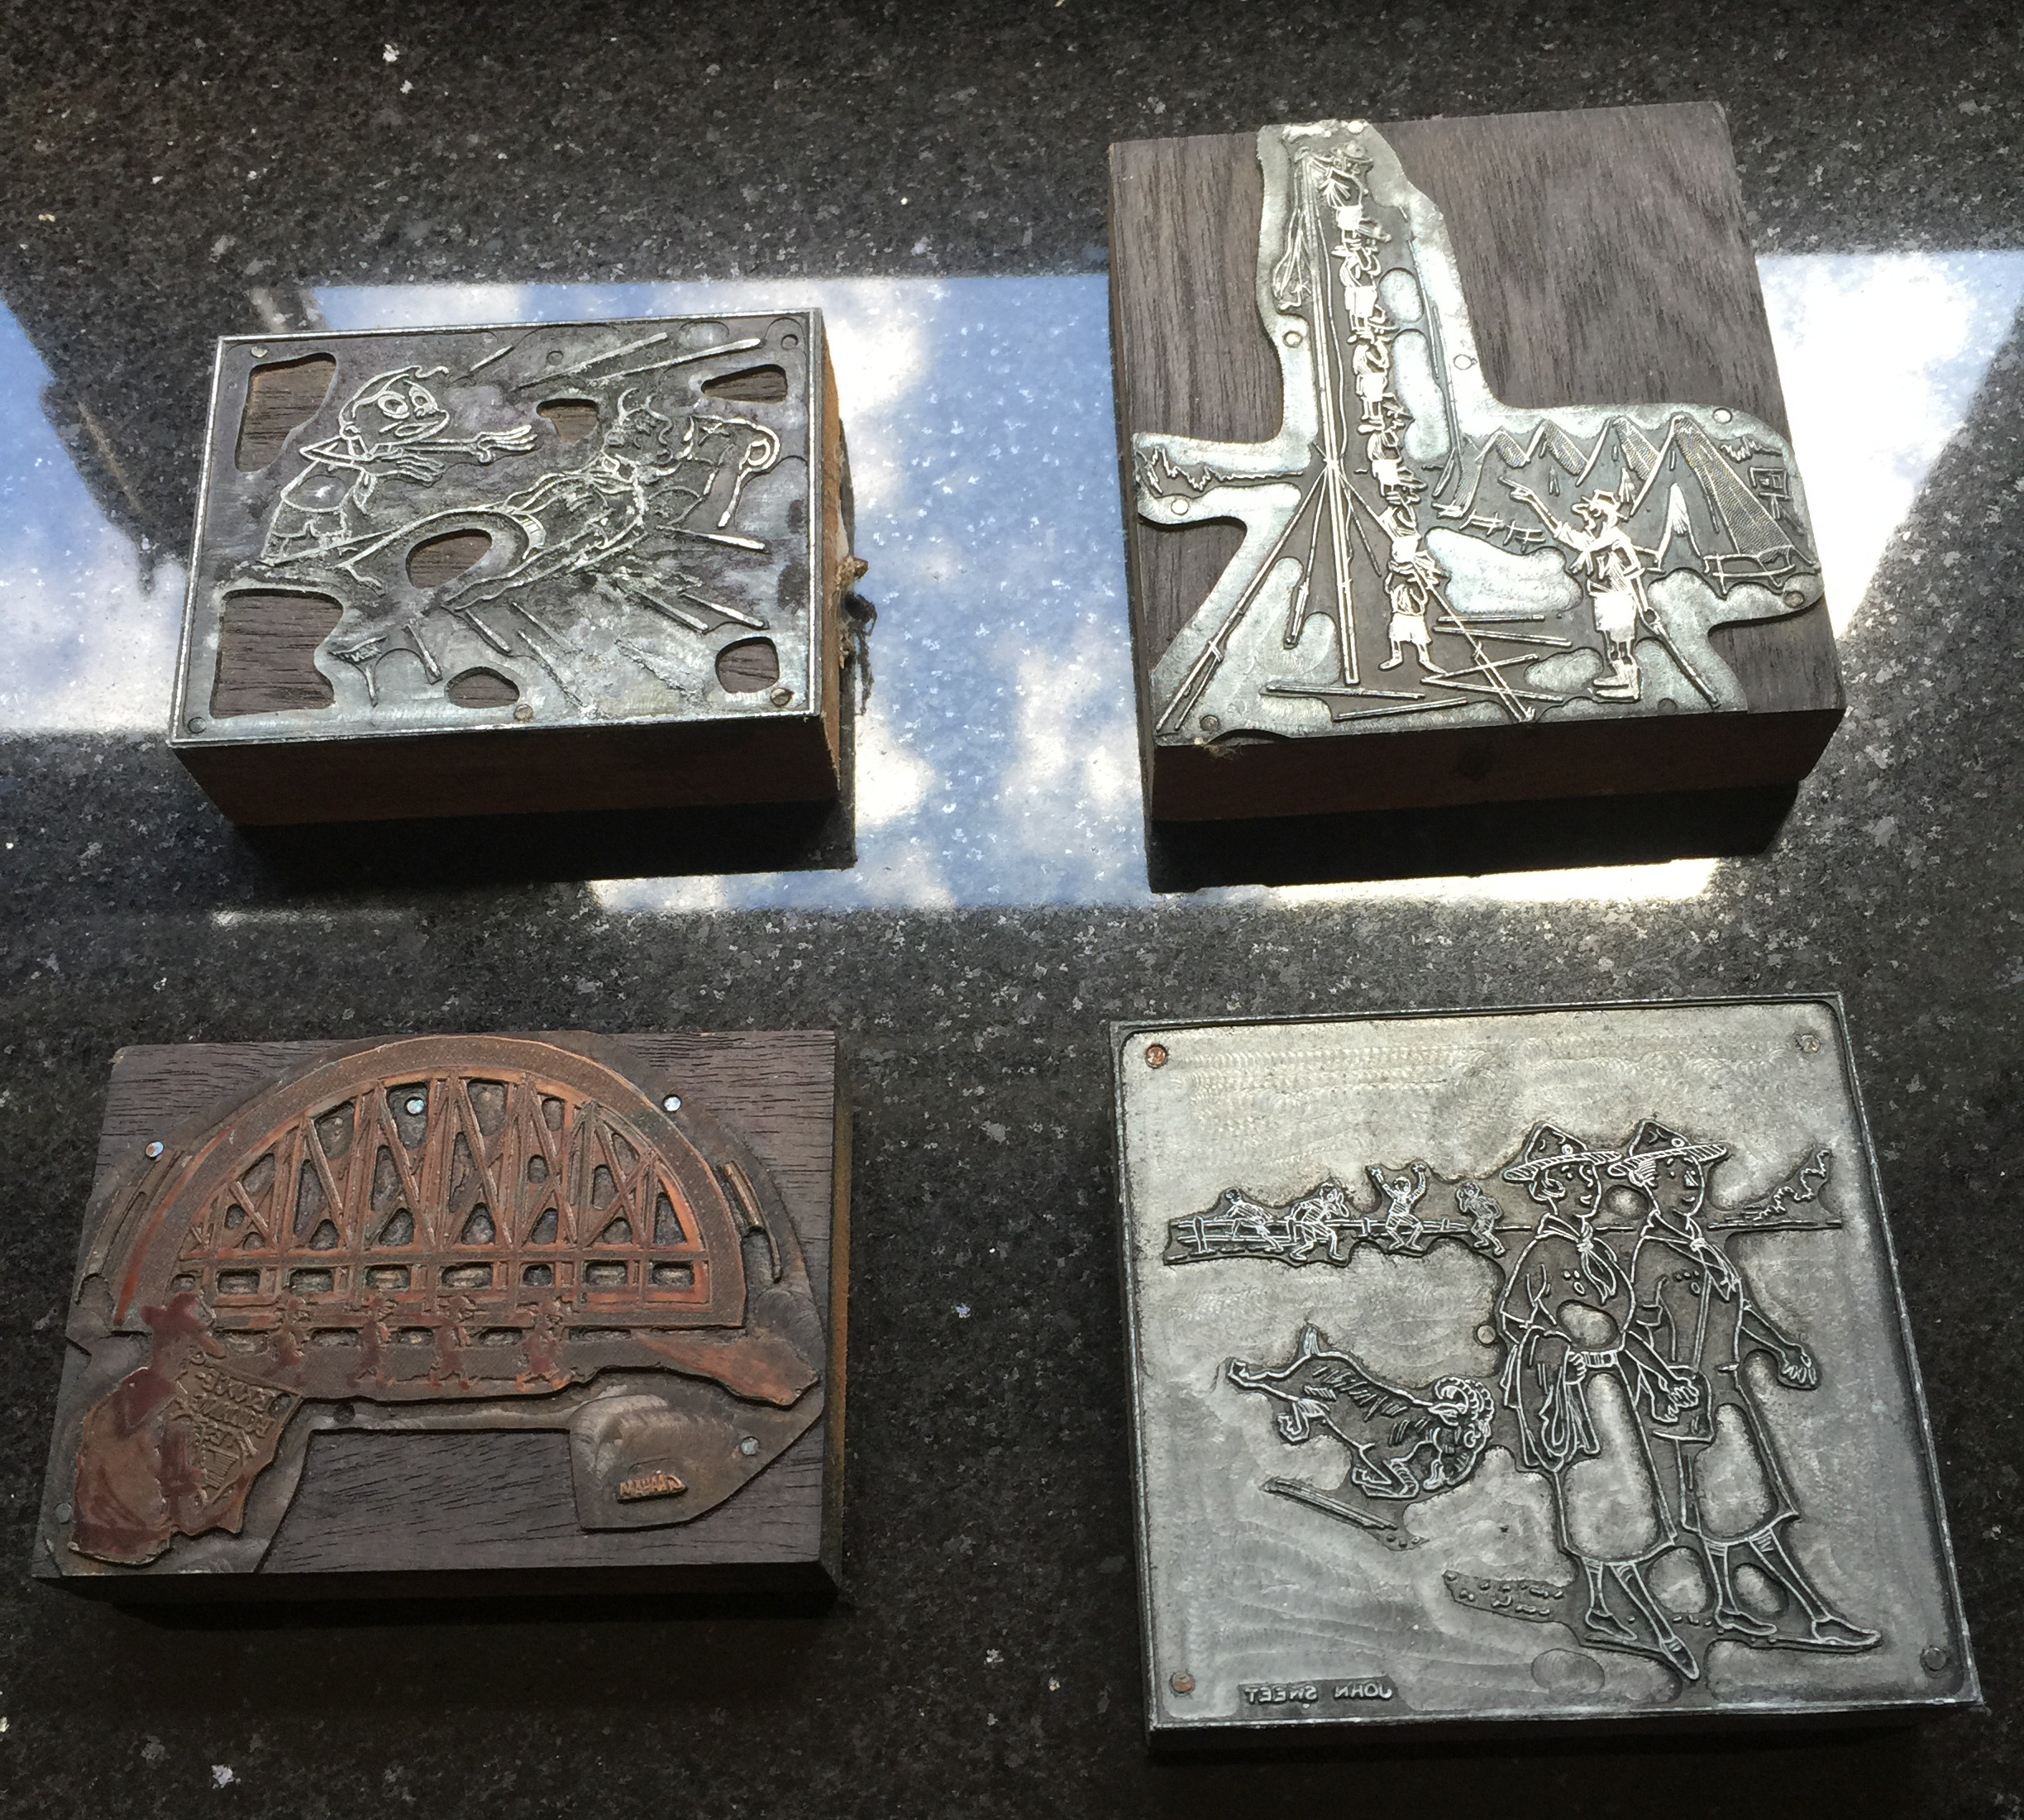 4 engraved metal pieces mounted on wood depicting in inverse different Scouting scenes.